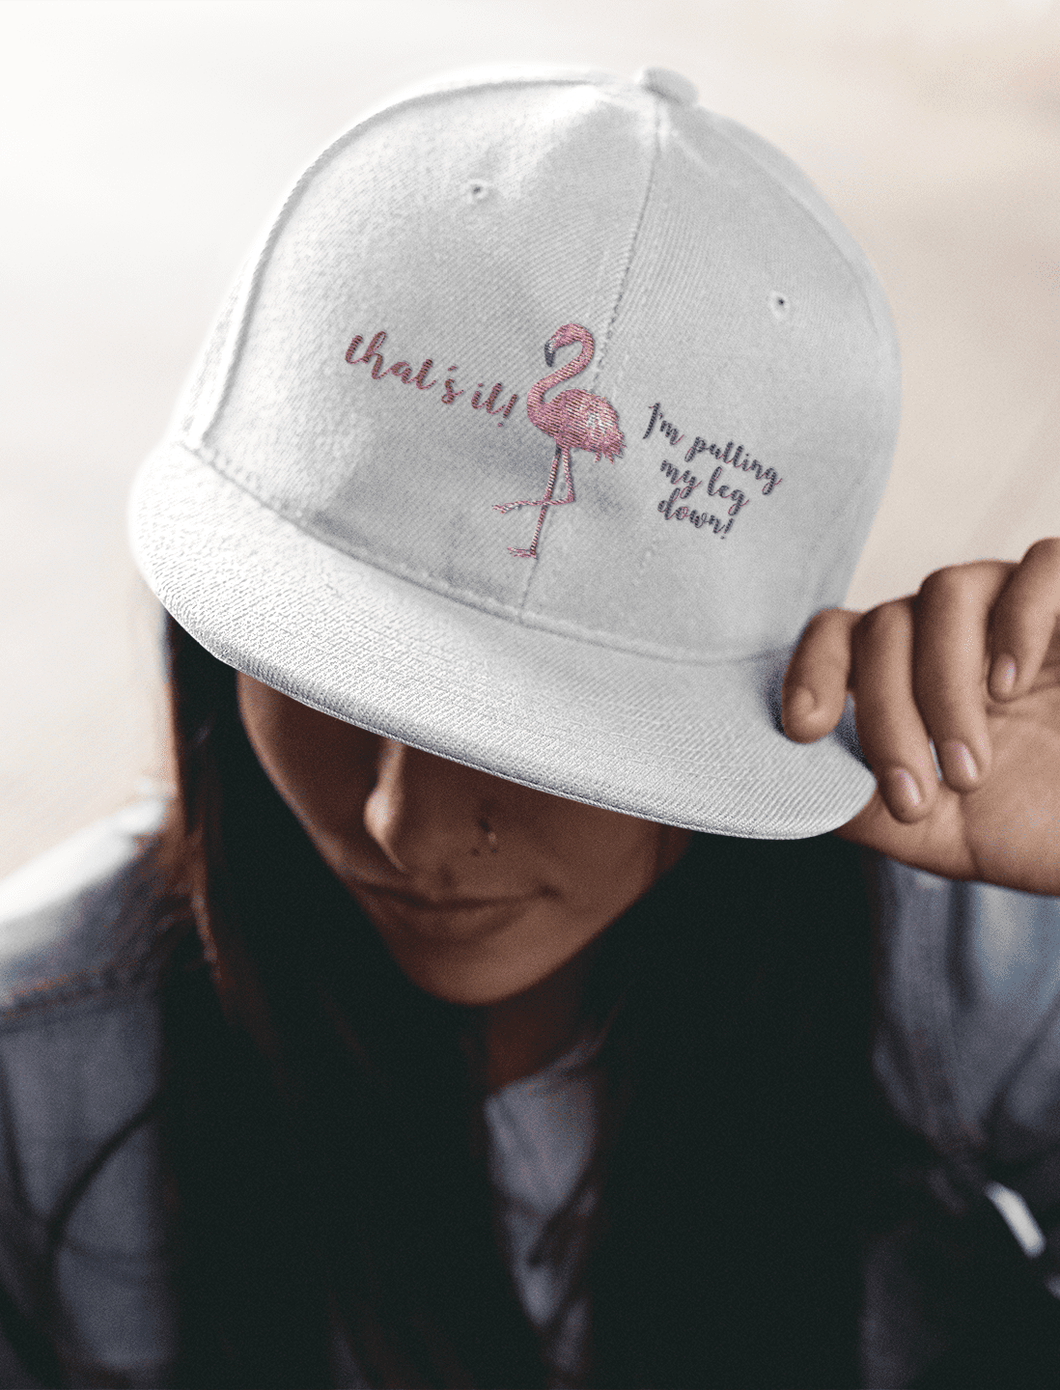 flamingo women's hat styles